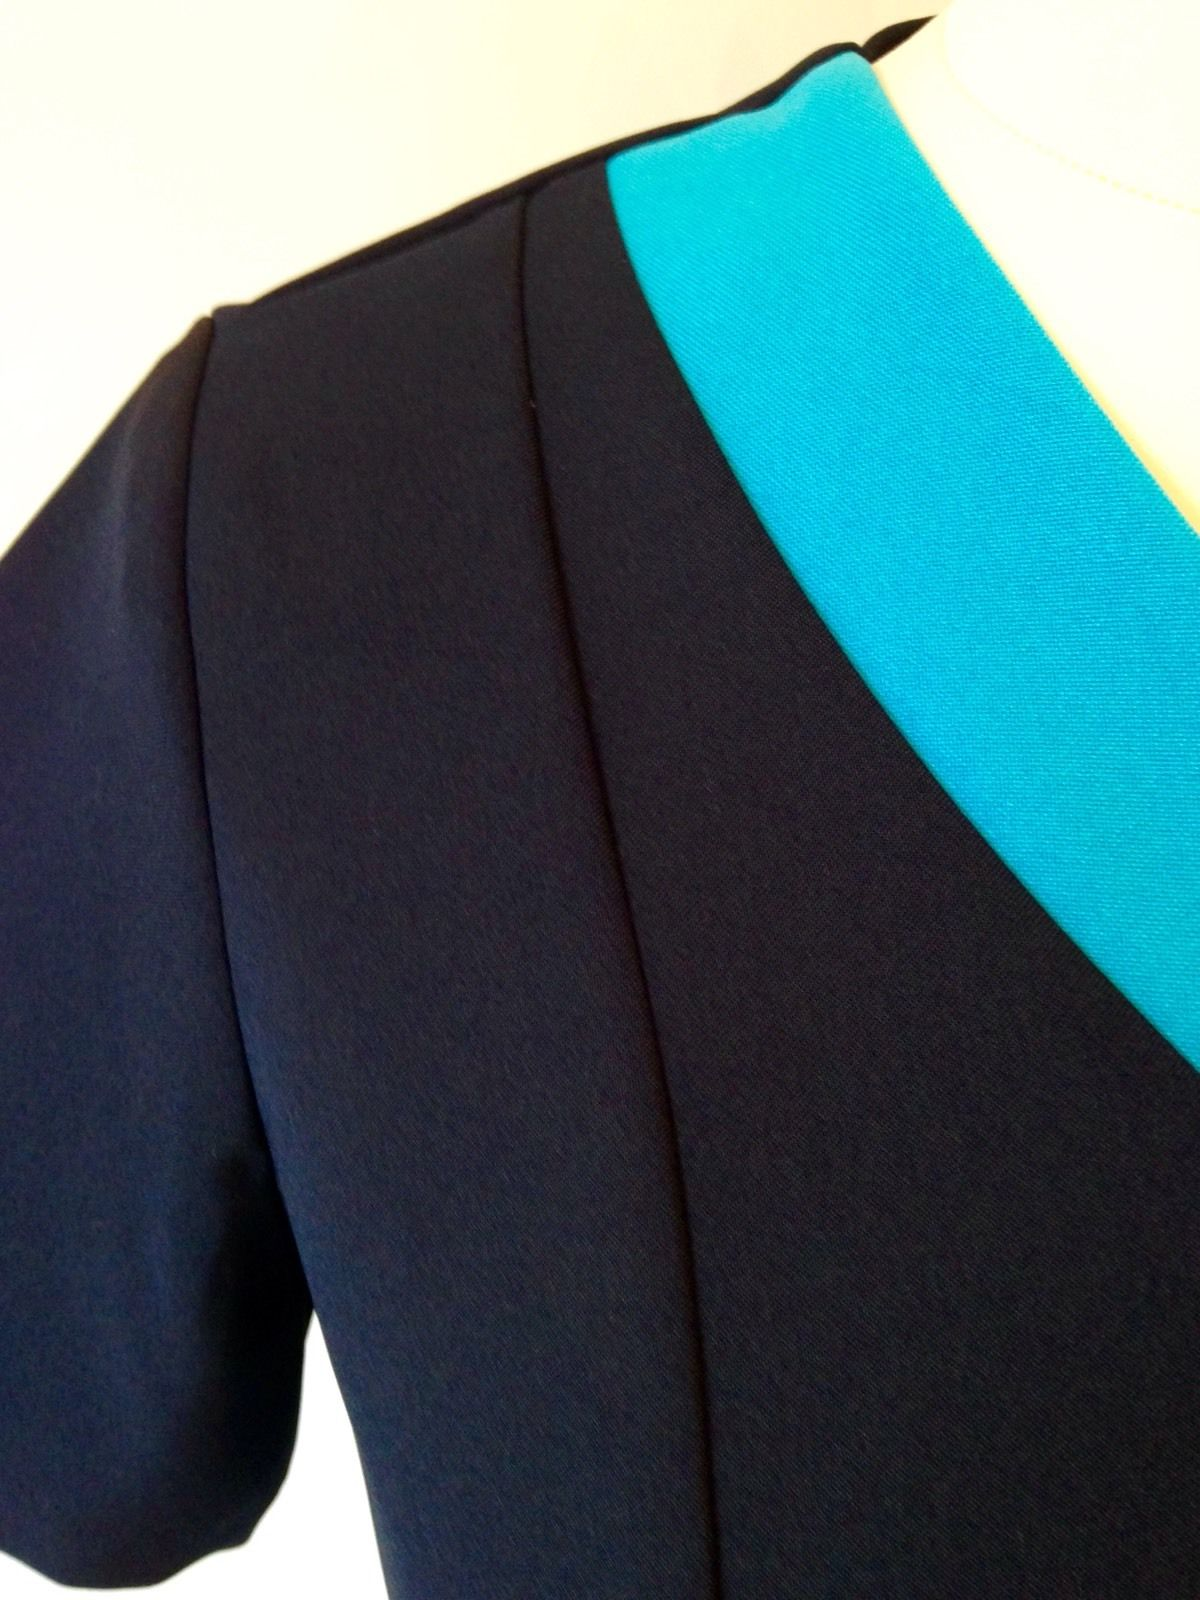 Navy Tunic with Bright Turquoise Trim